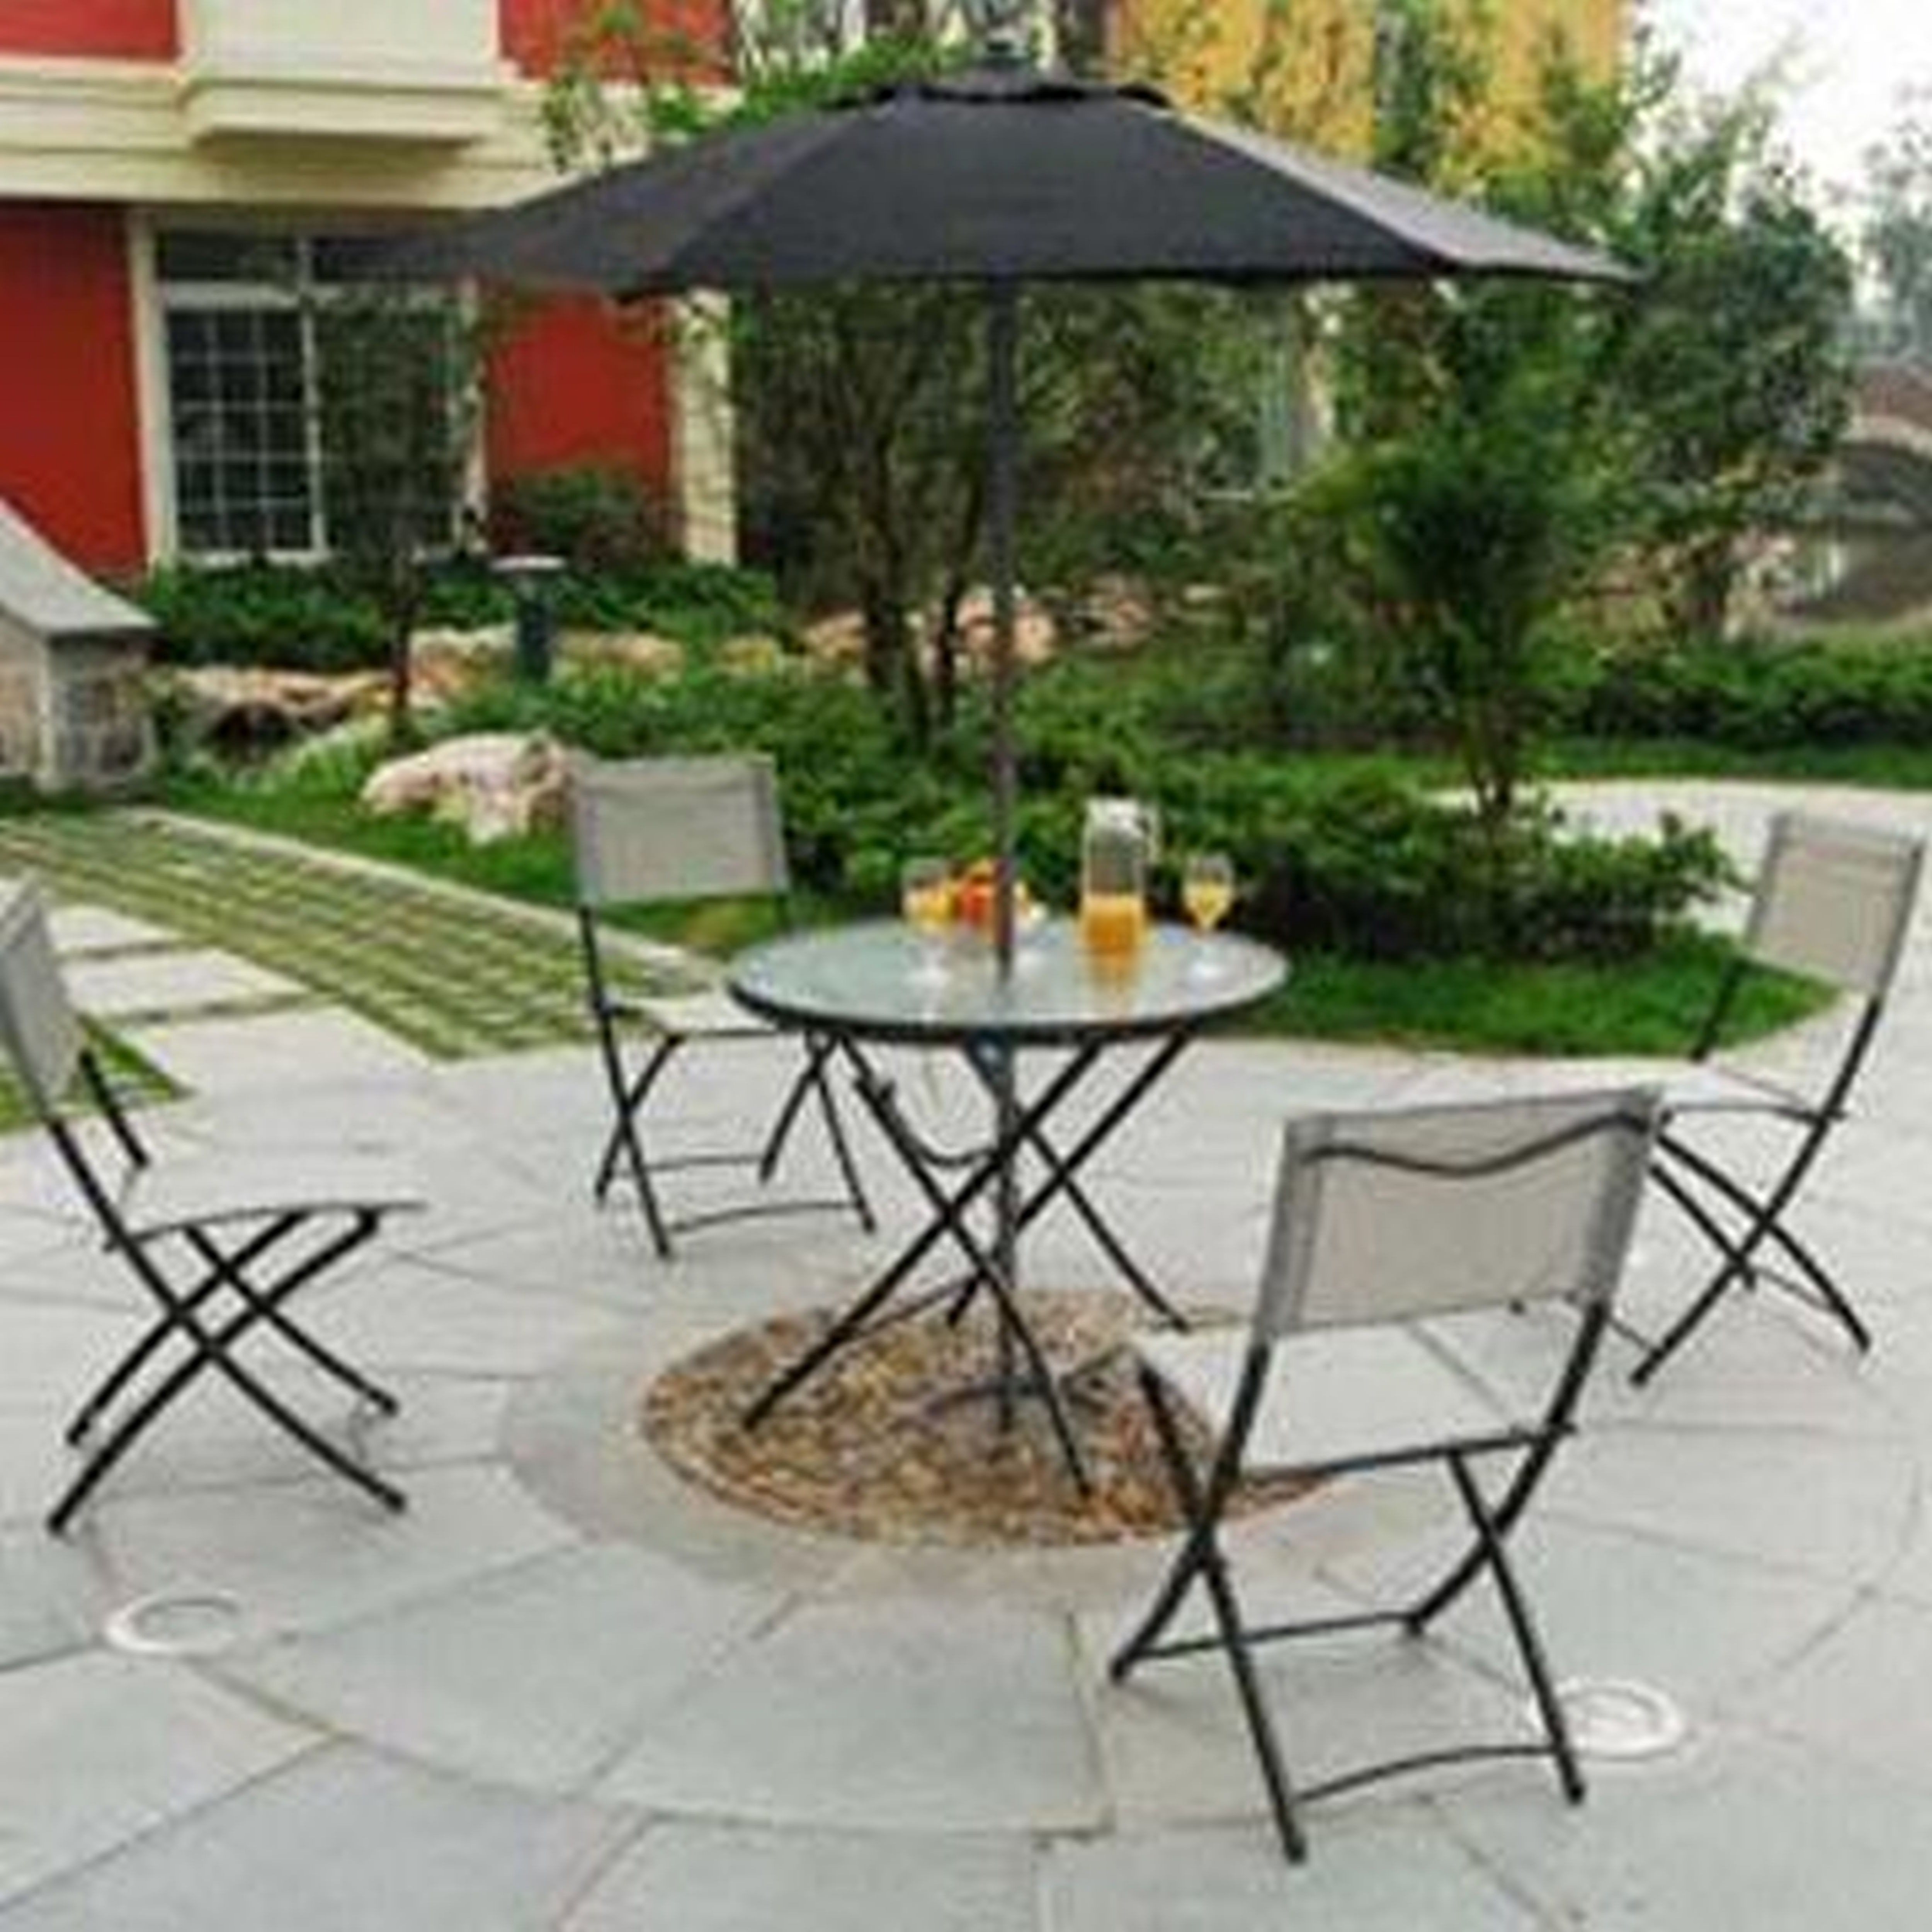 Most Recently Released Umbrella For Patio Table New 30 The Best Patio Umbrellas Near Me Intended For Small Patio Umbrellas (View 10 of 20)